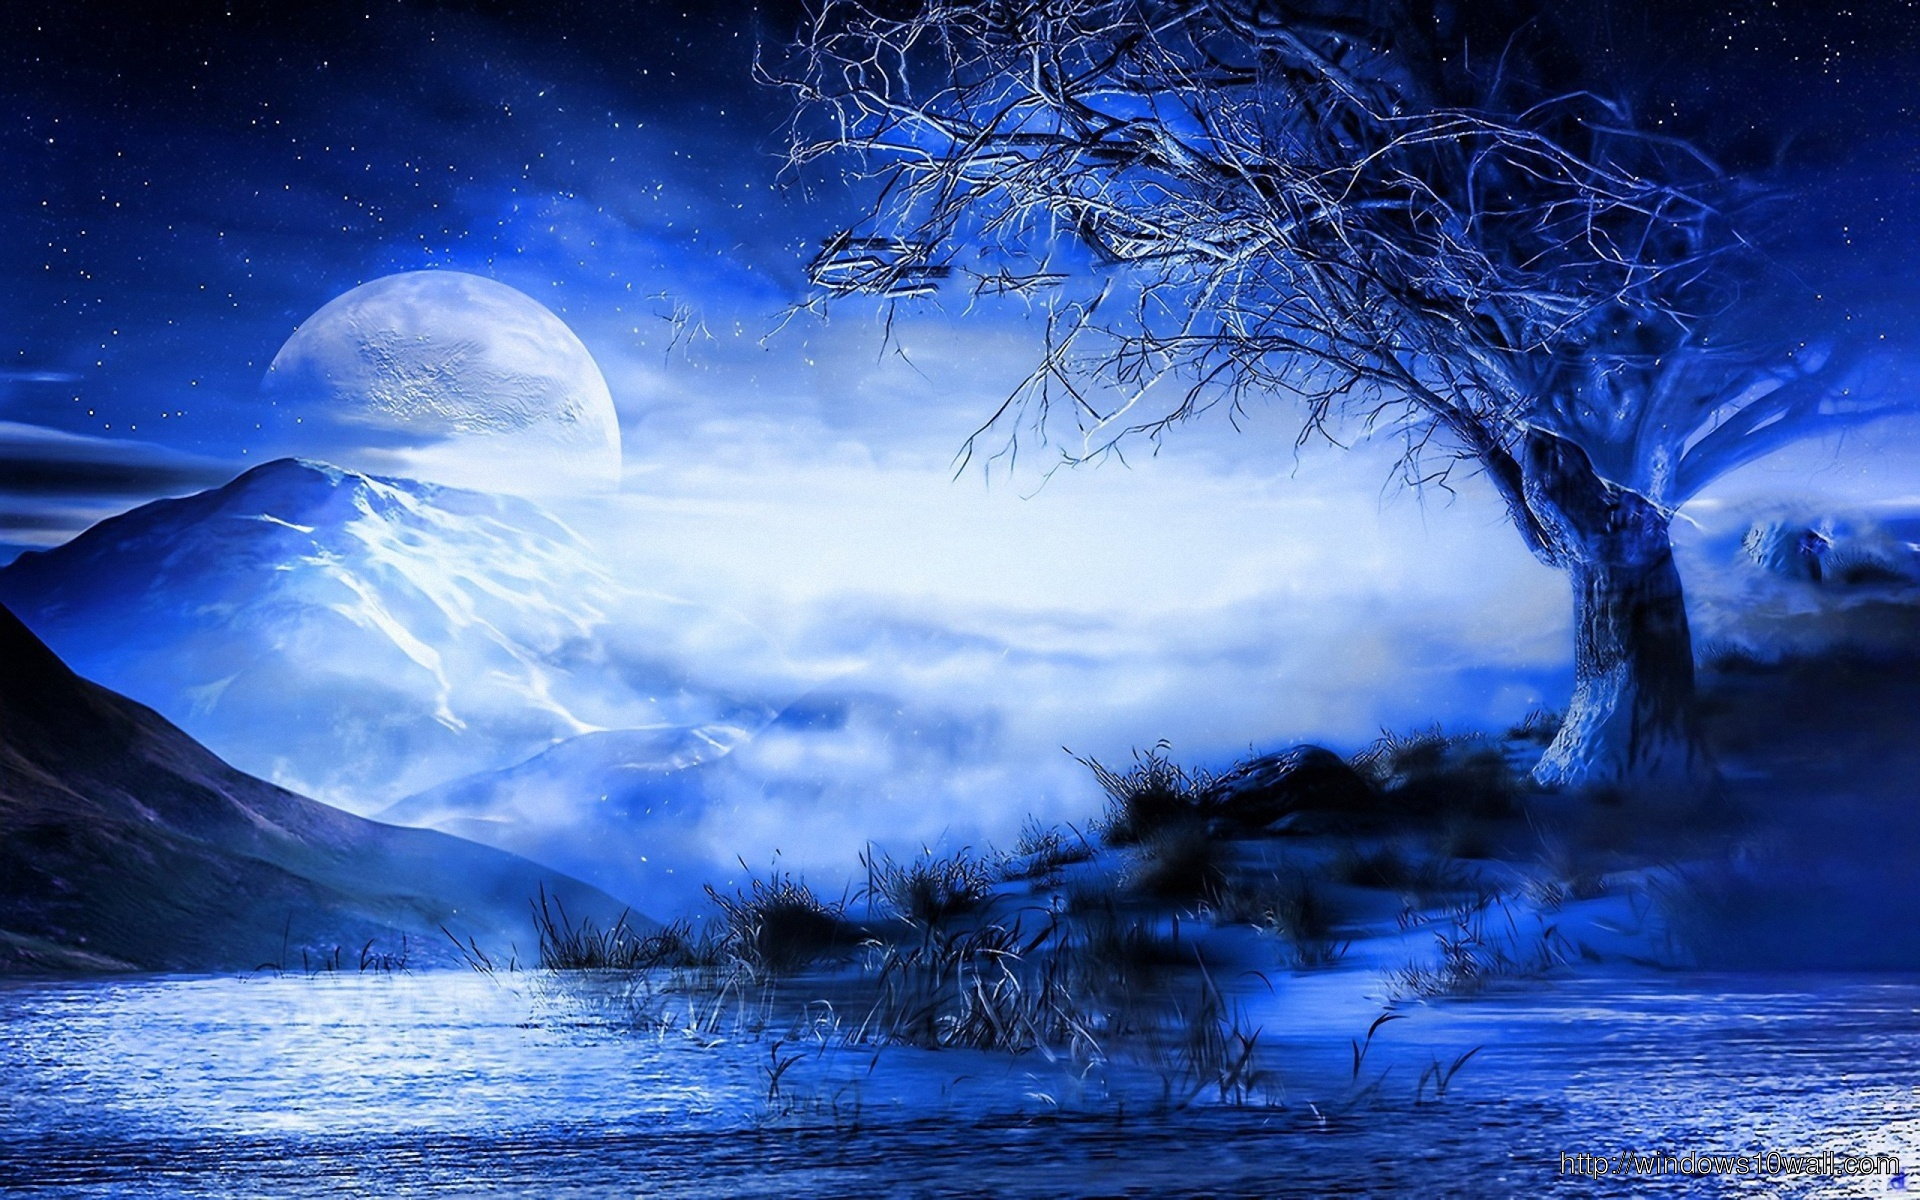 Blue Moon Behind The Mountains Hd Wallpaper Windows 10 Wallpapers